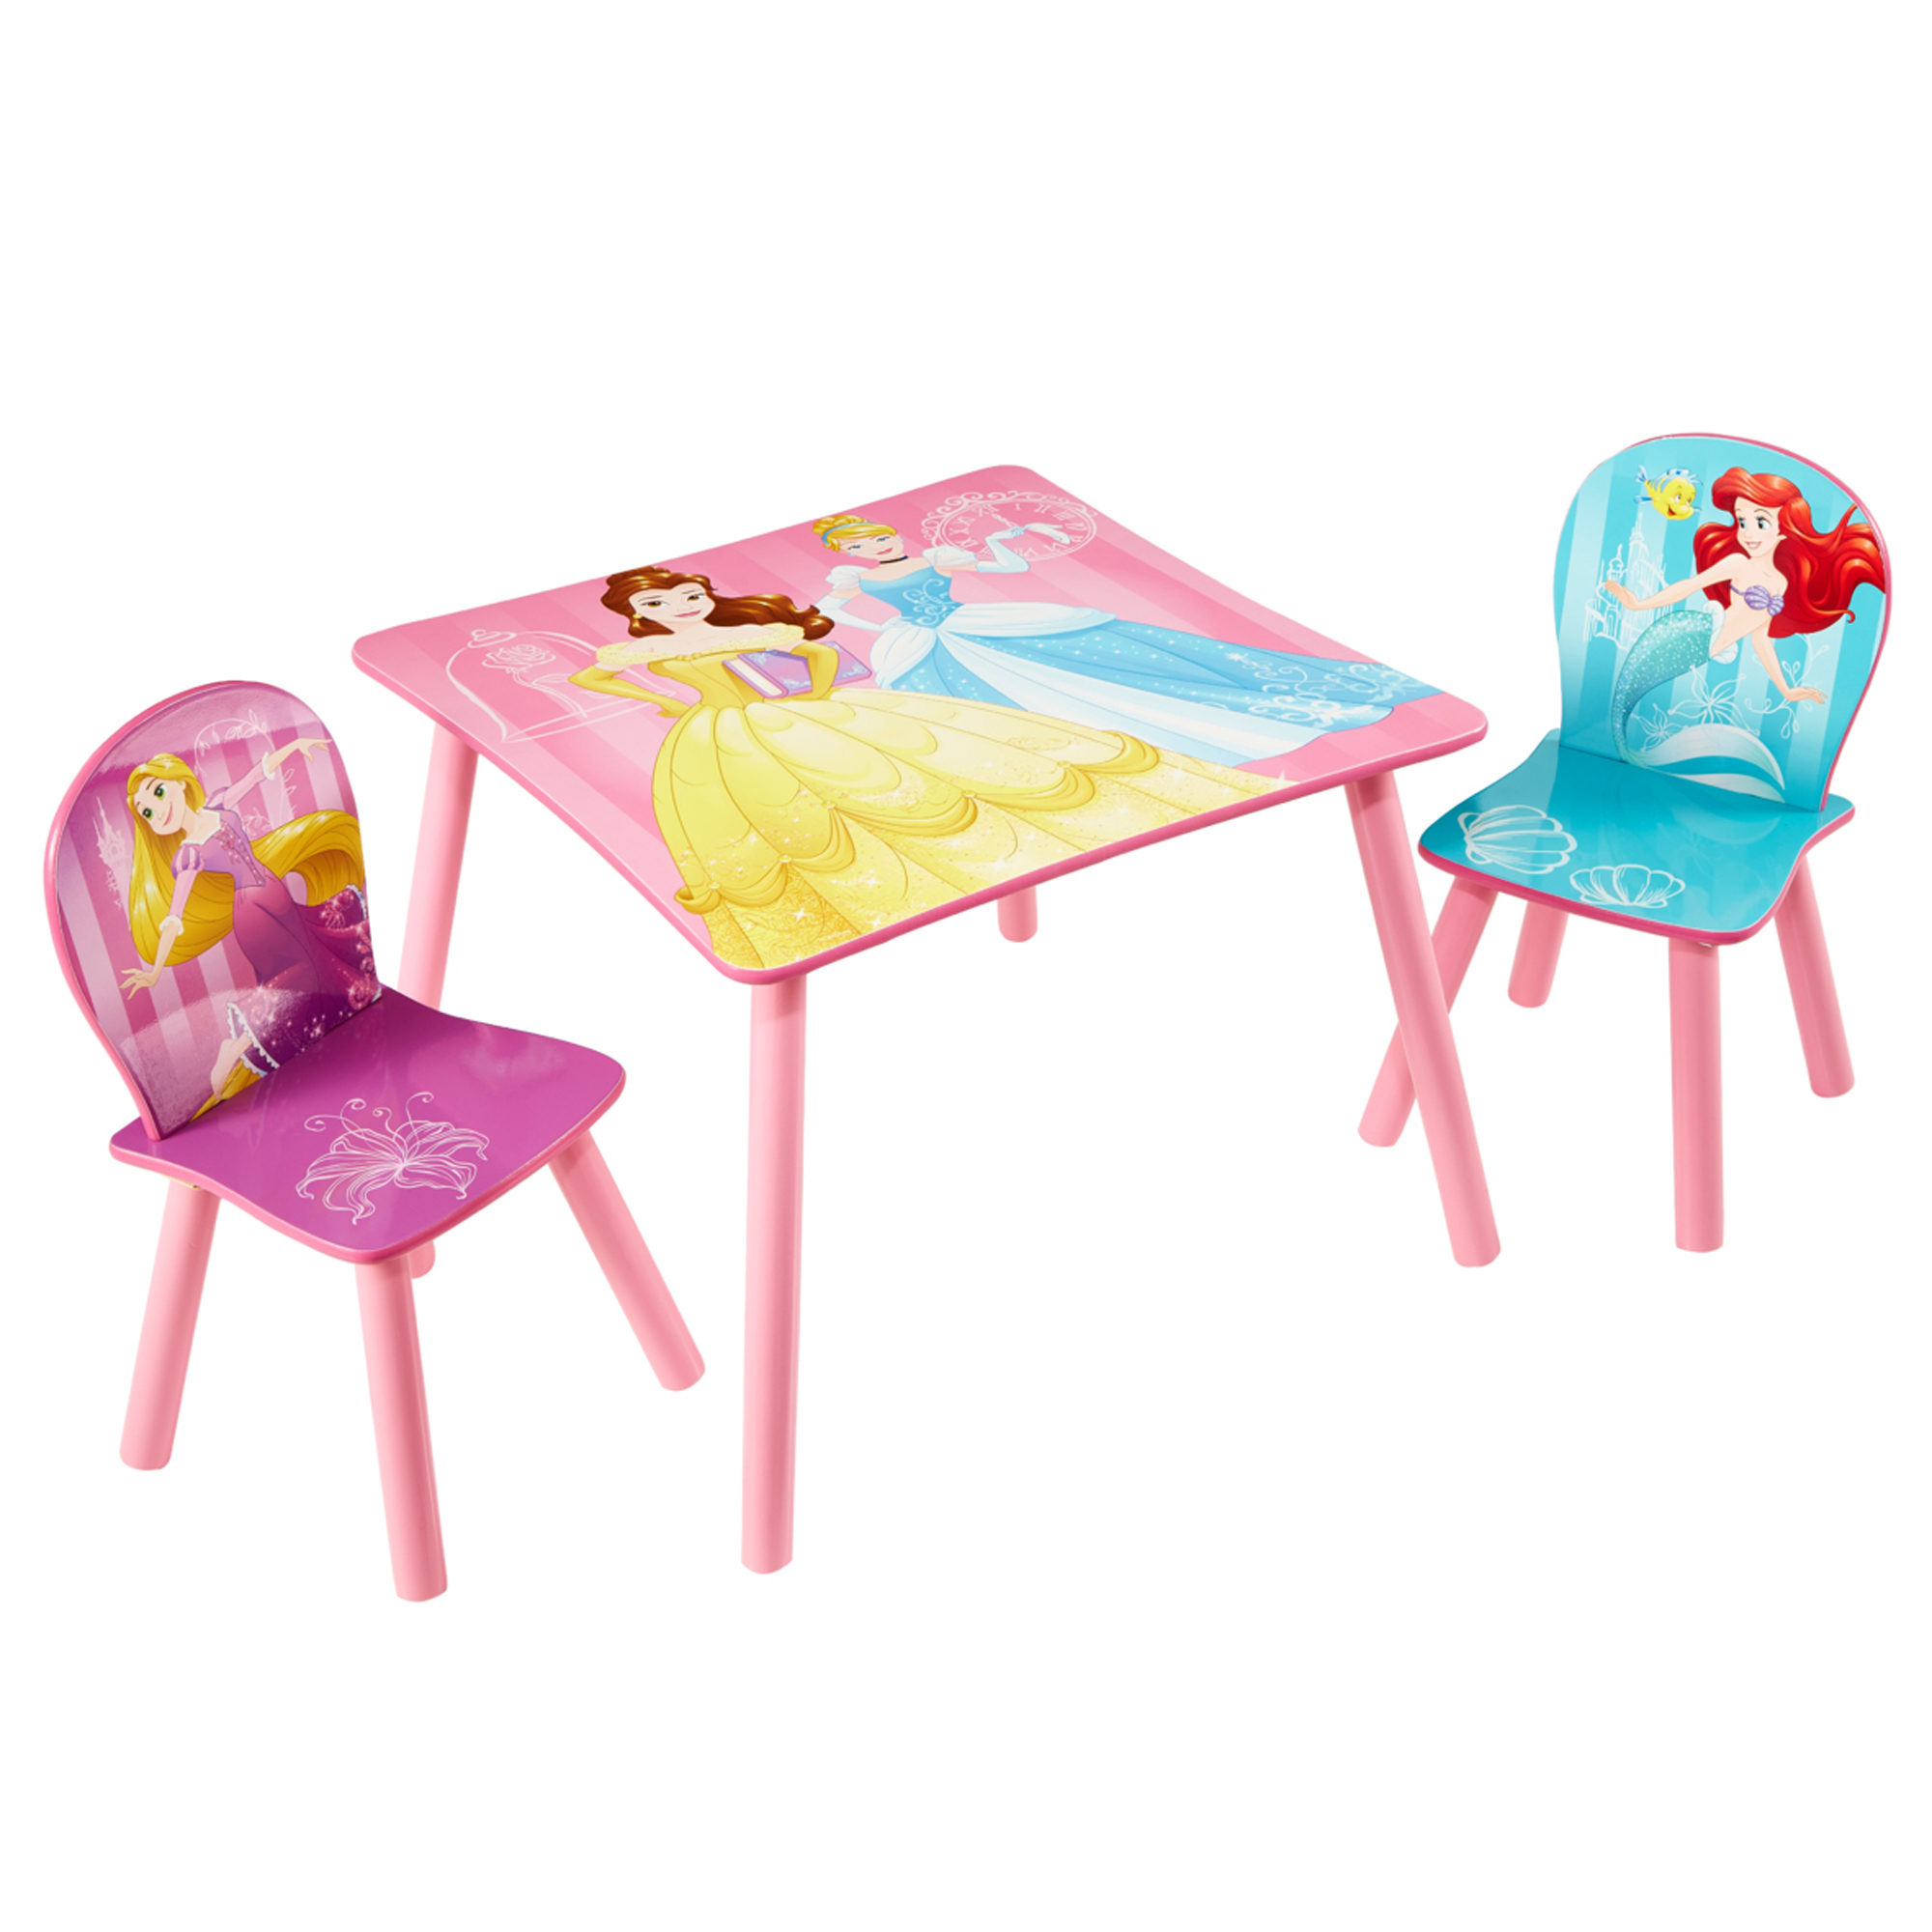 Disney Princess 2 Seater Table & Chairs Set